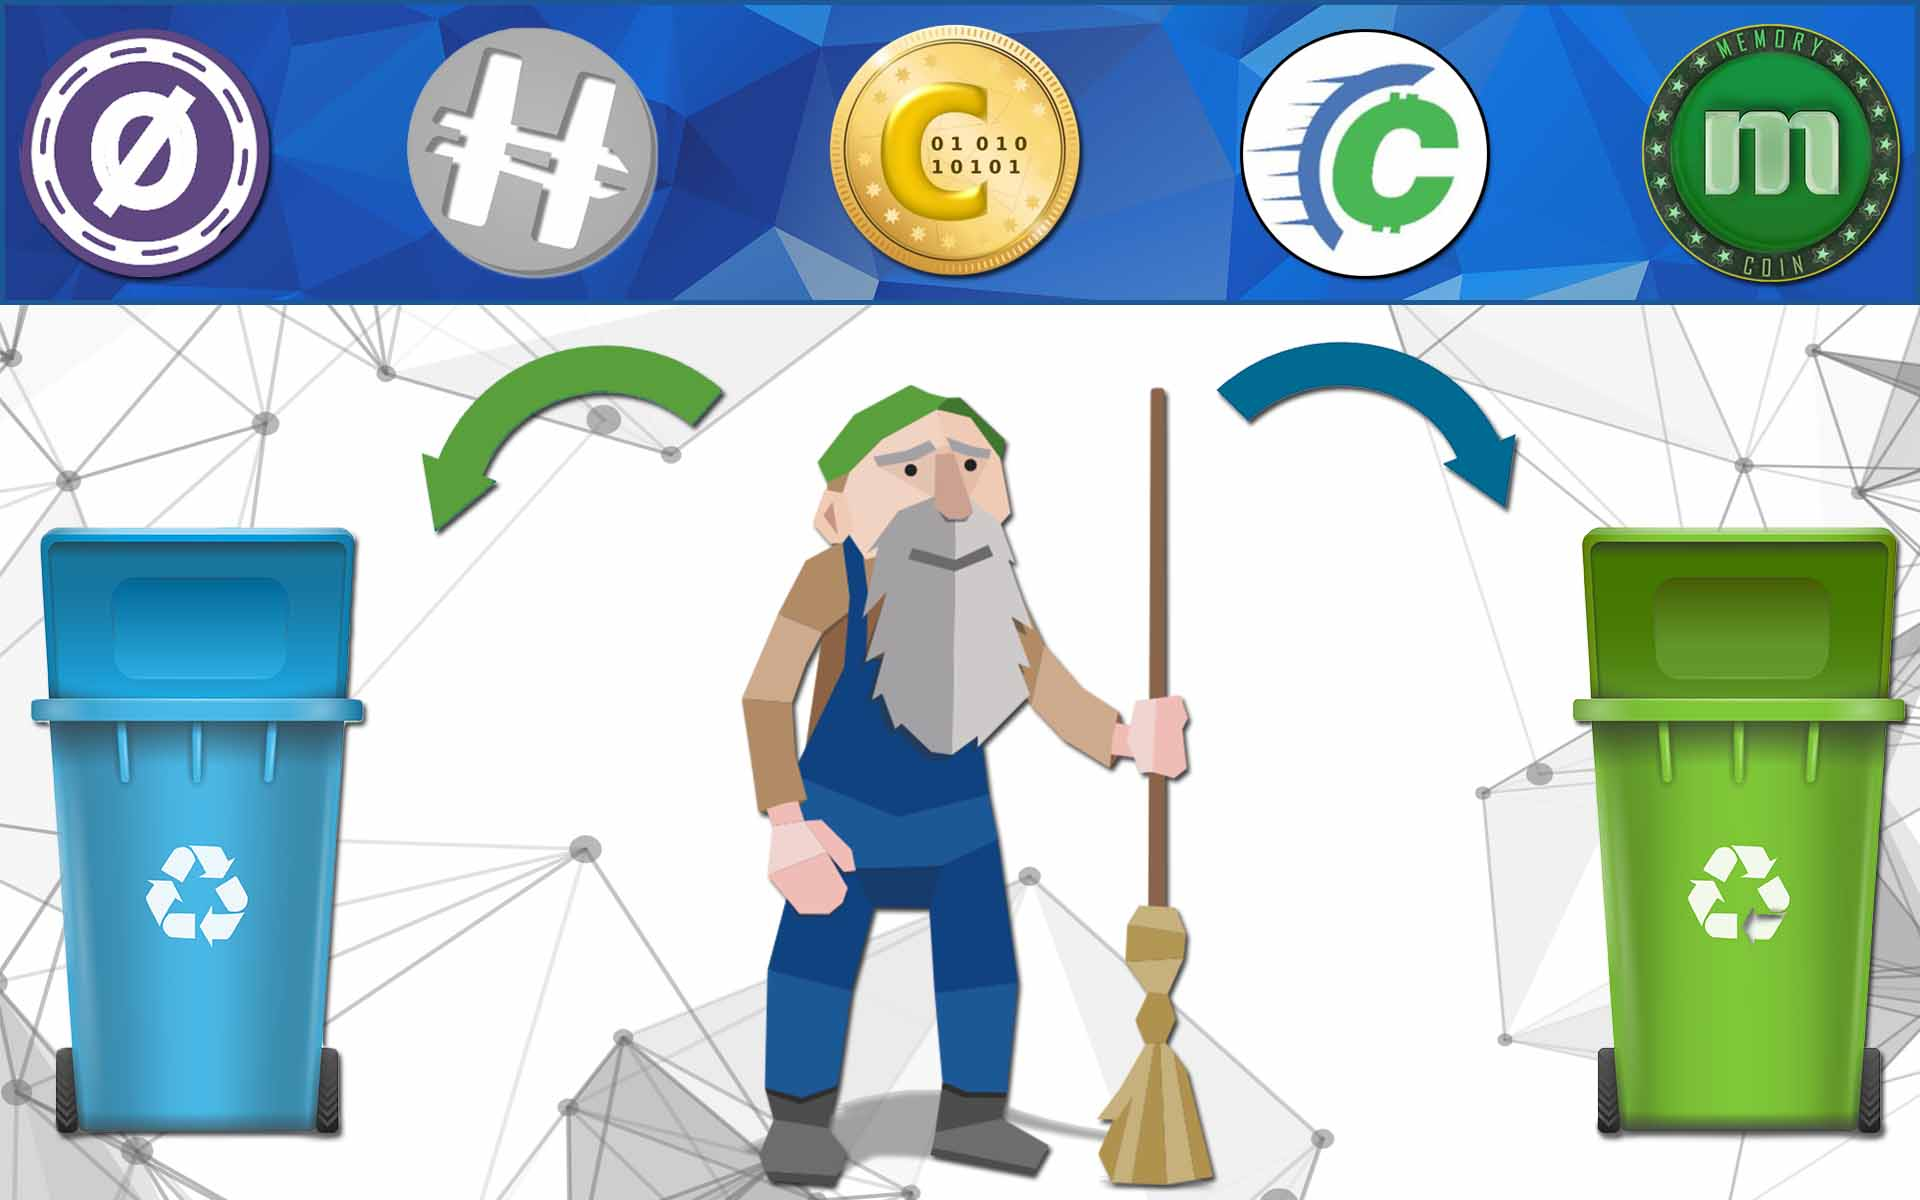 CoinJanitor Hopes to Clean Up Crypto with the Help of the Community